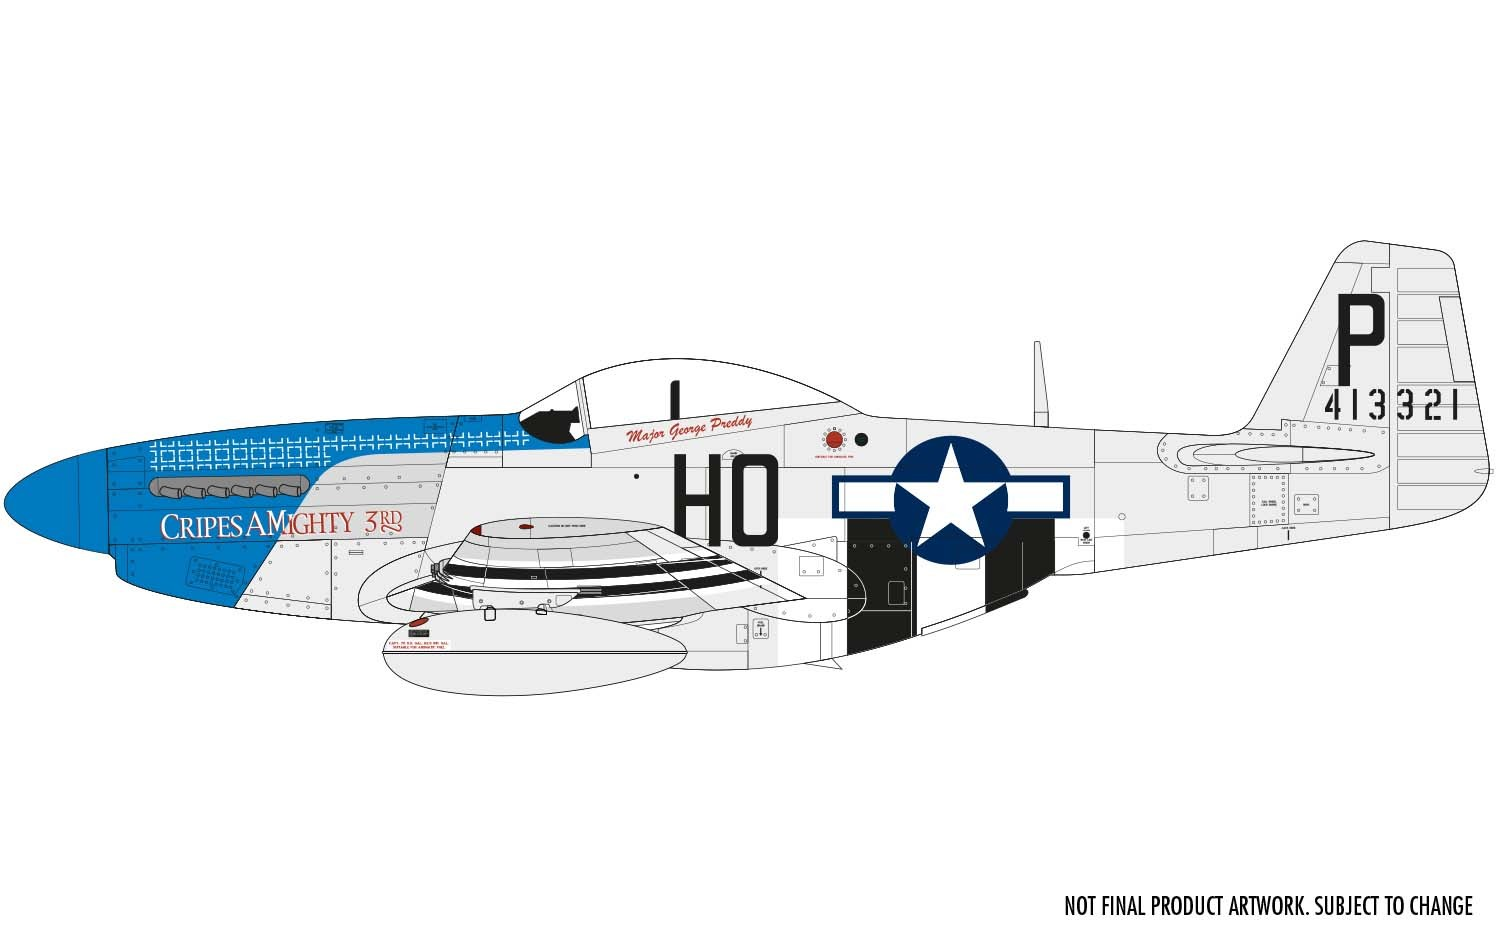 A05138 Airfix 1/48 North American P-51D Mustang